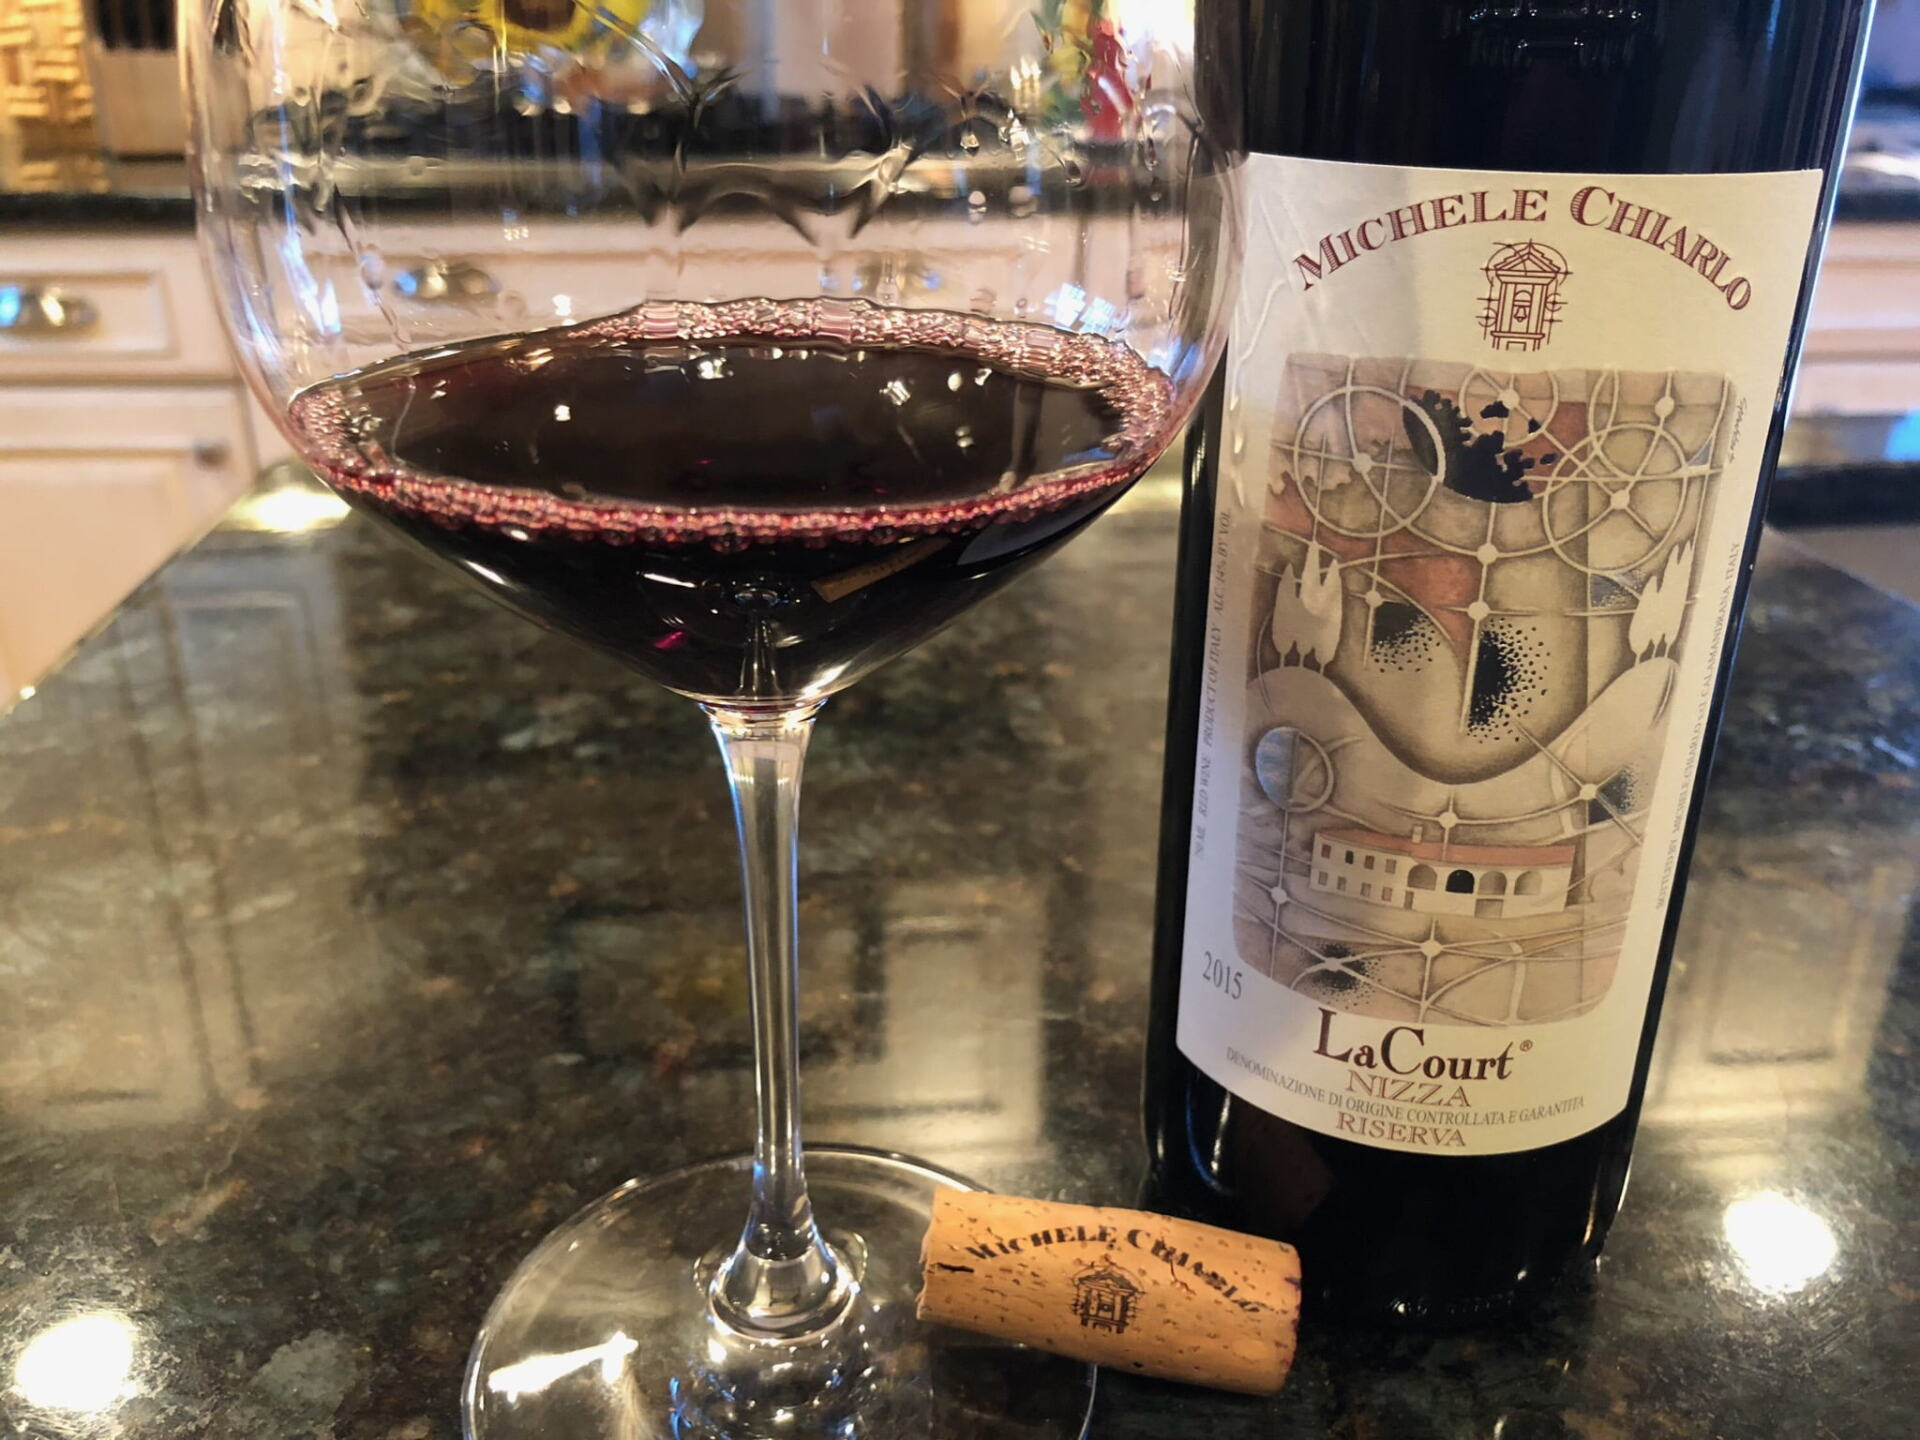 Michele Chiarlo Nizza Barbera